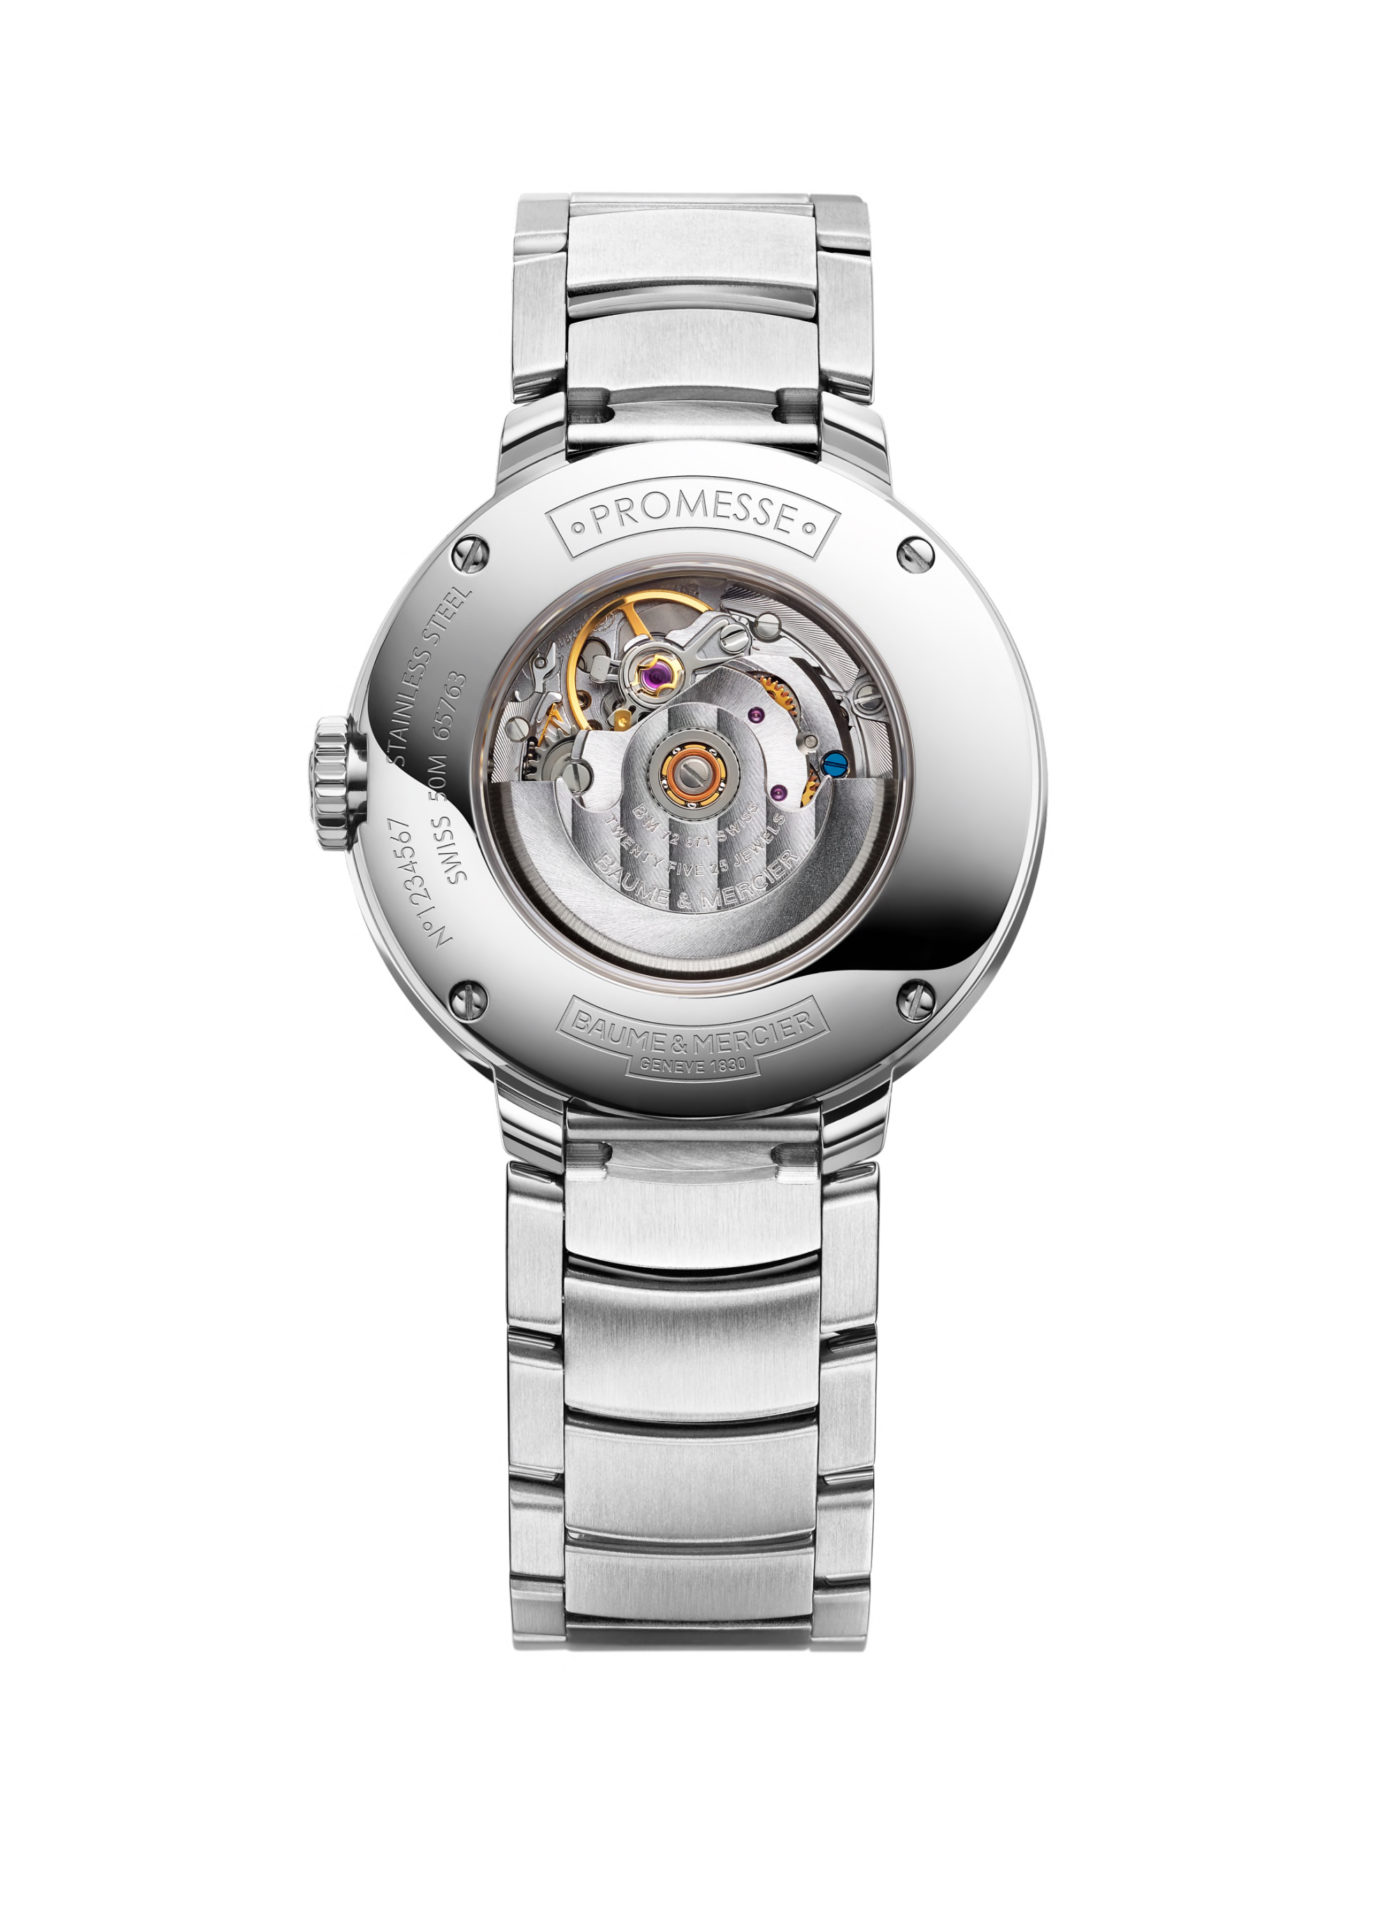 Baume-&-Mercier-Promesse-10182*-Hall-of-Timea